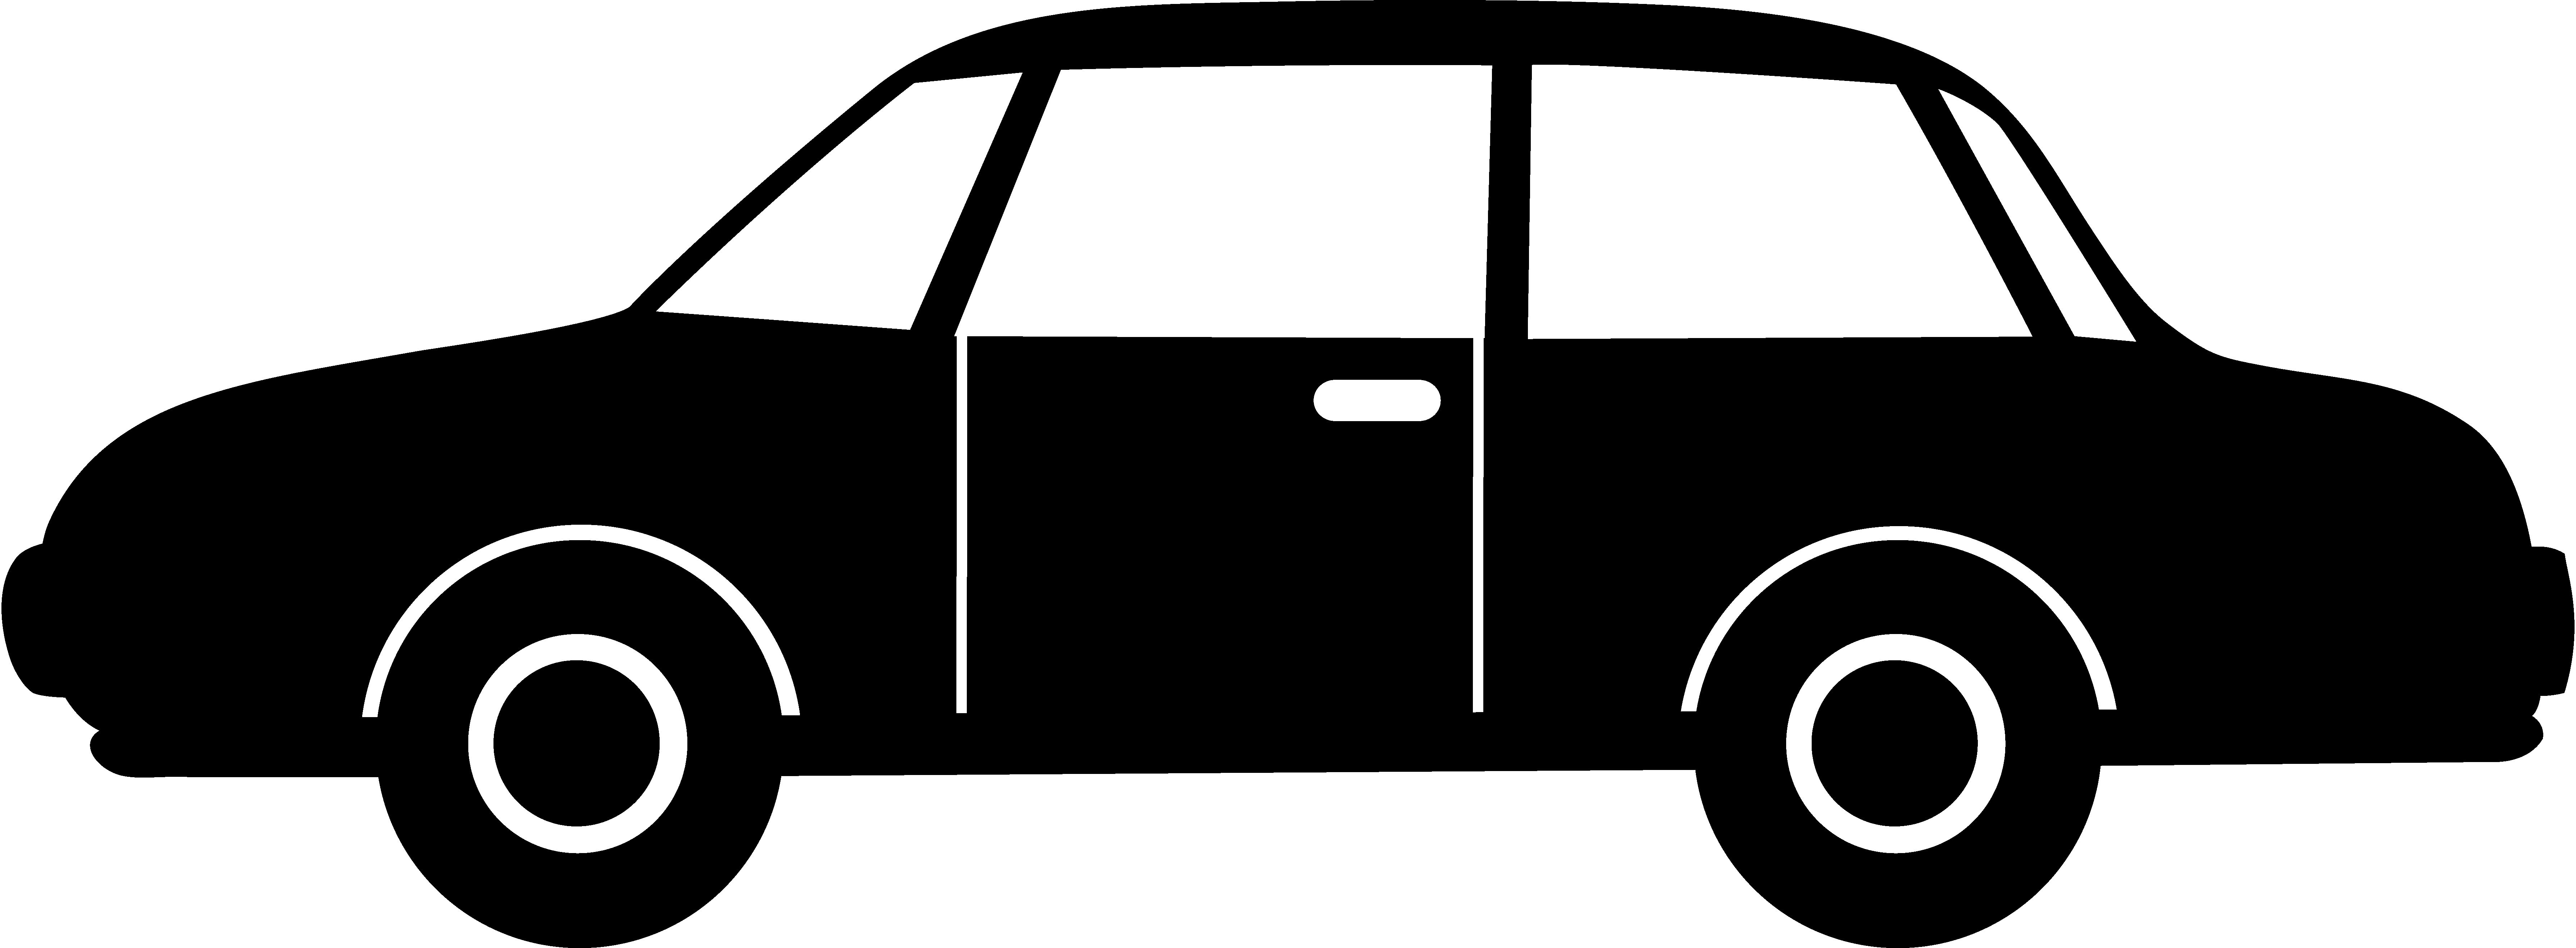 Car silhouette transparent png. Cars clip body vector free library